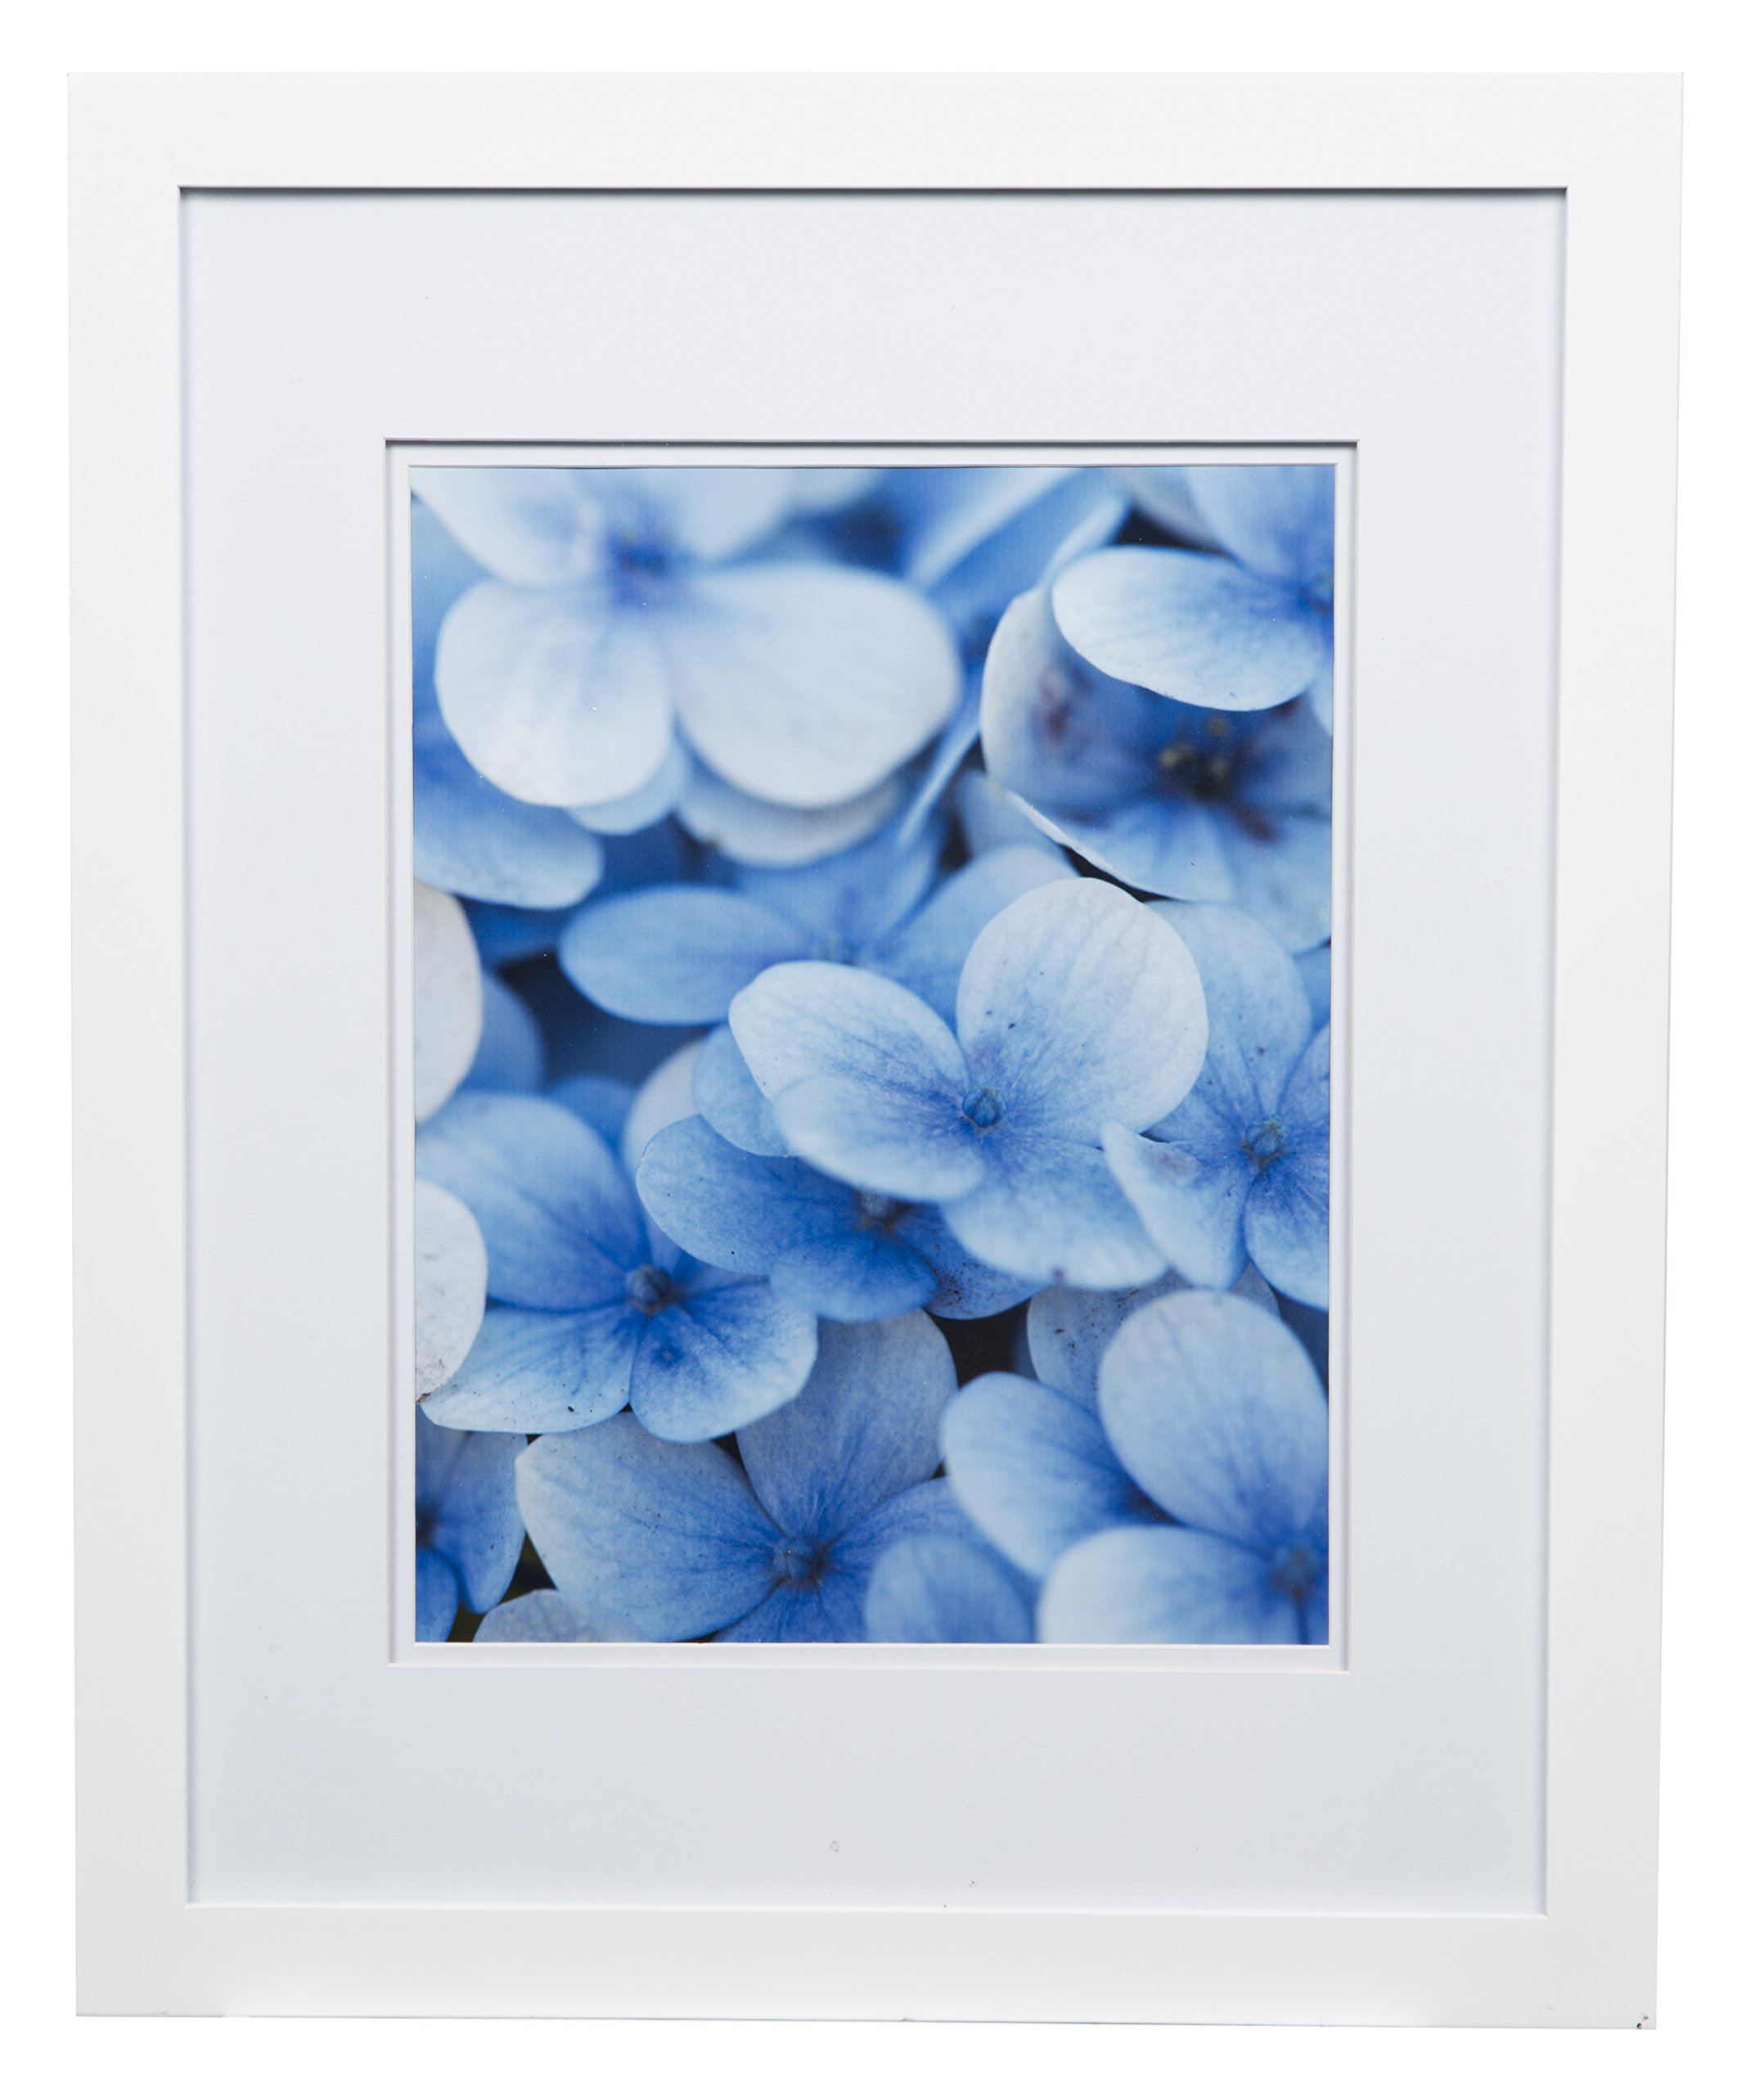 Gallery Solutions Flat Wall Picture Photo 16X20 White Double Frame, MATTED to 11X14, 16'' x 20'', by Gallery Solutions